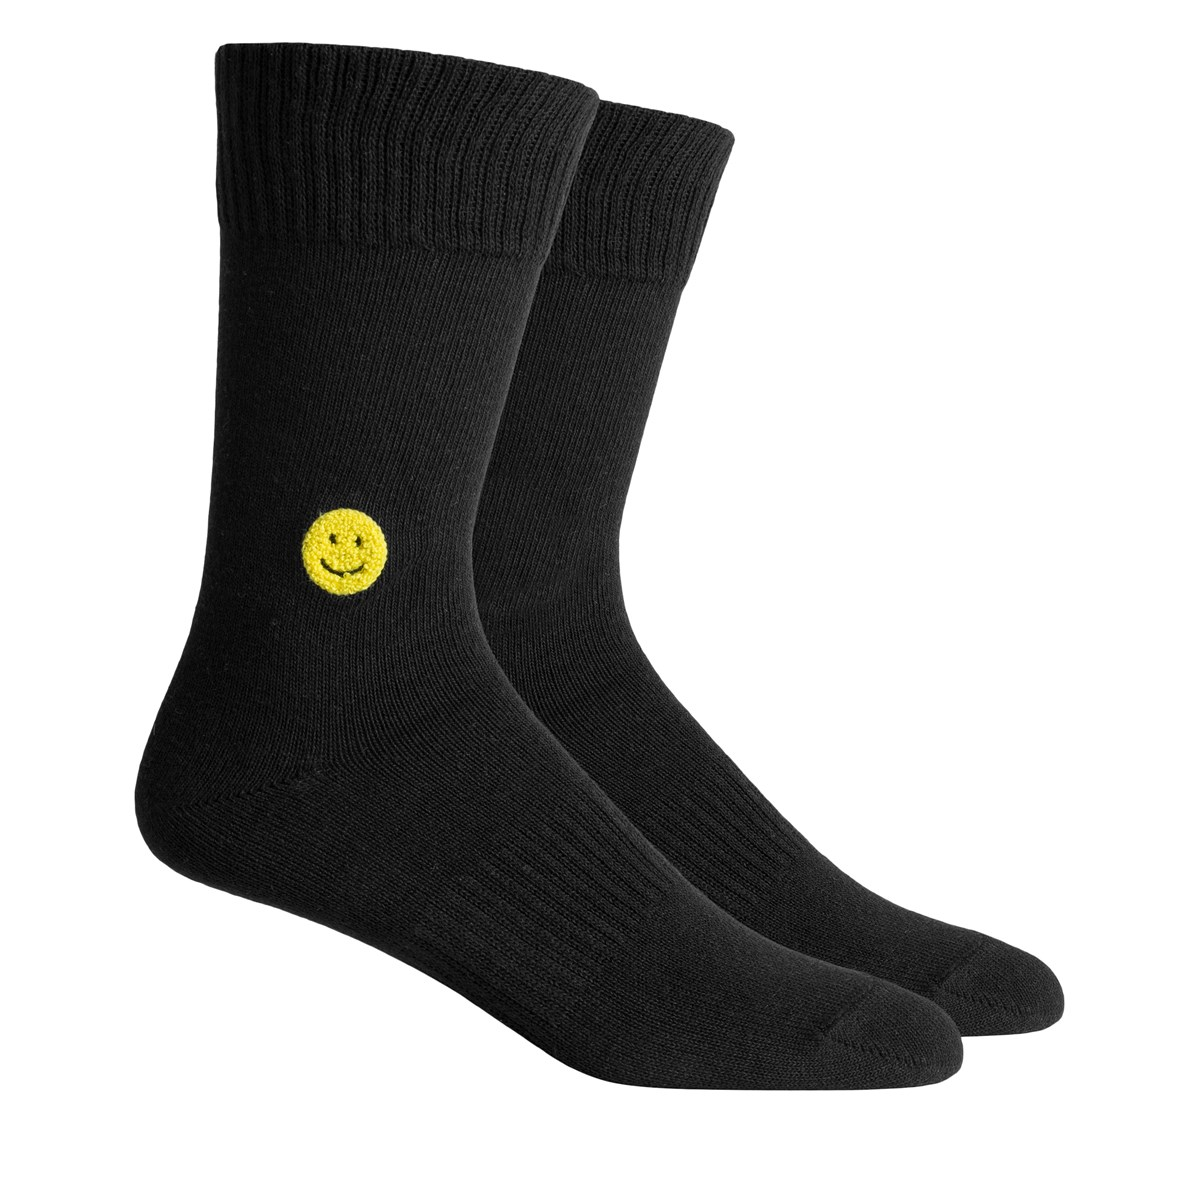 Men's Lucky Socks in Black